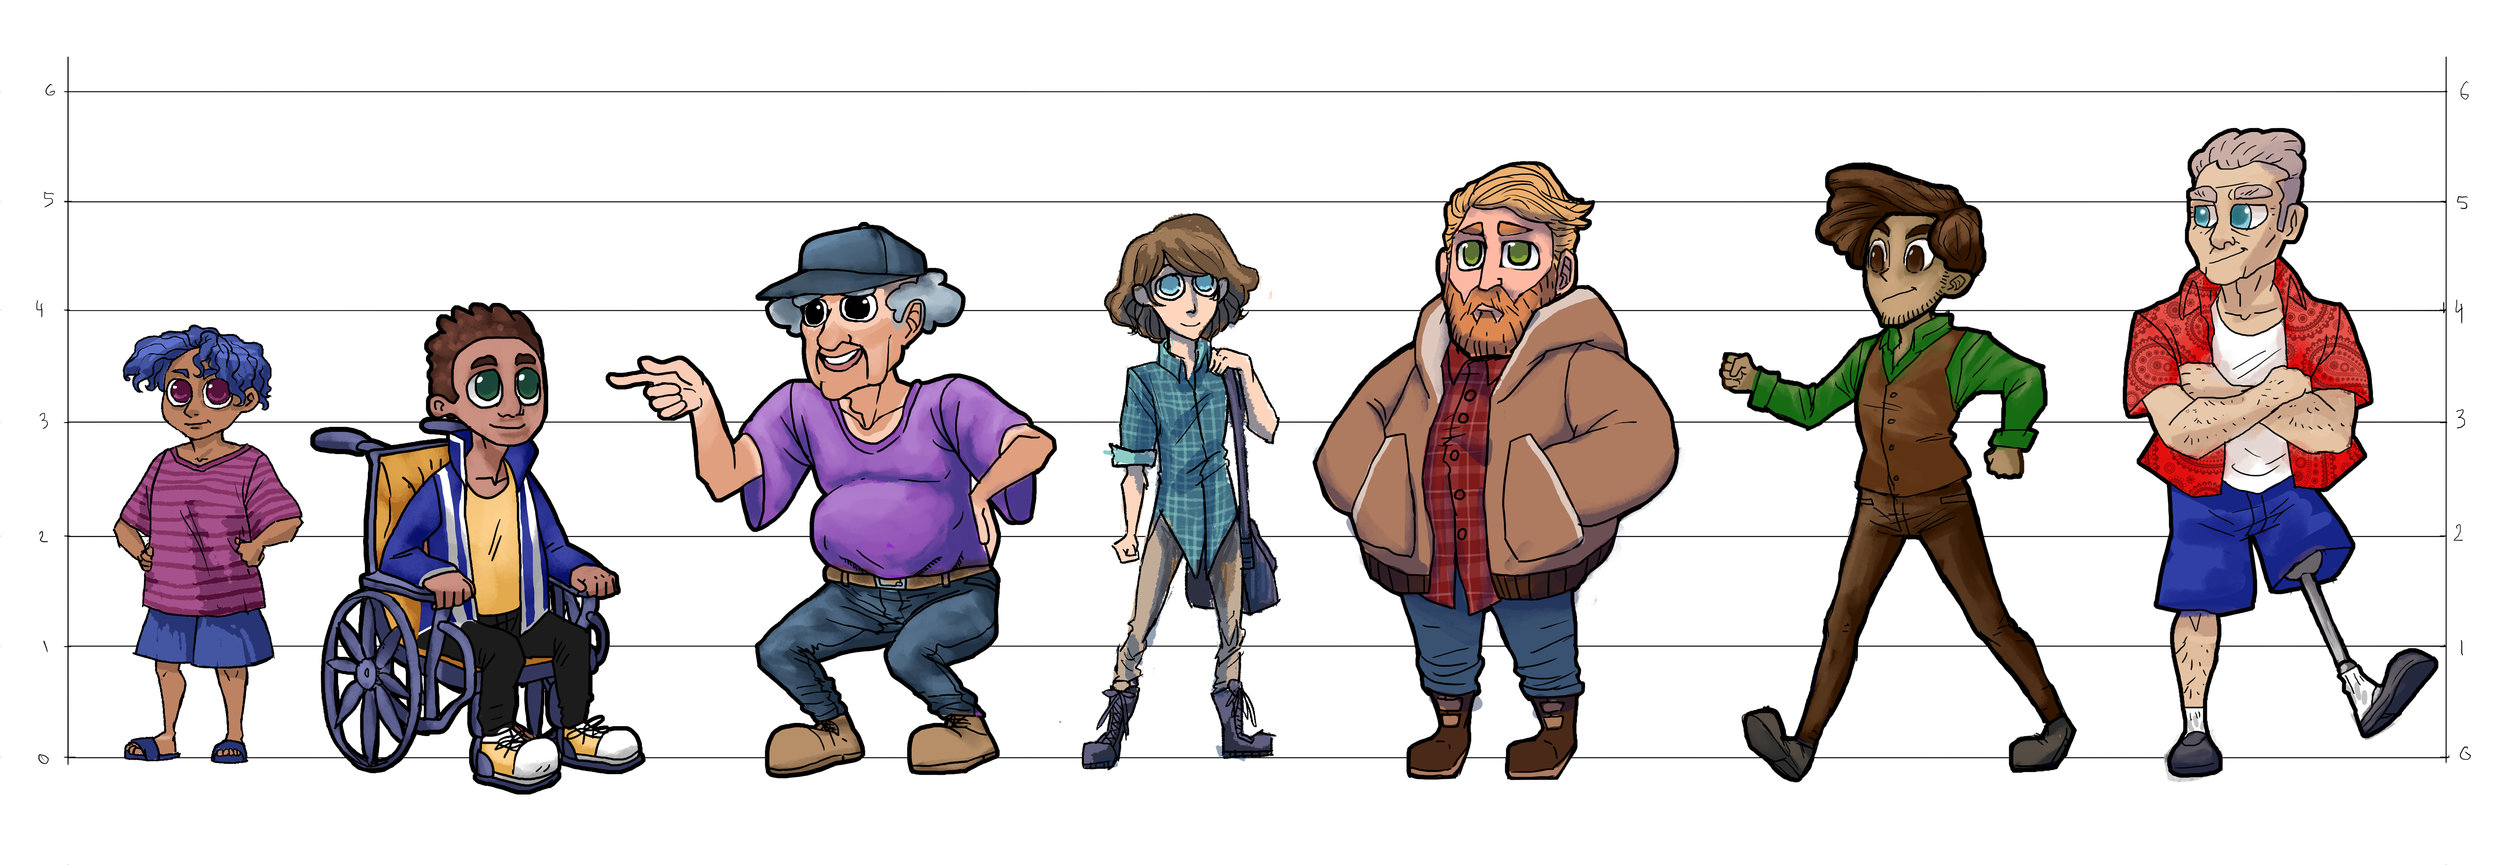 CharacterConcepts_LineUp_Males_v1_JessicaGreving.jpg